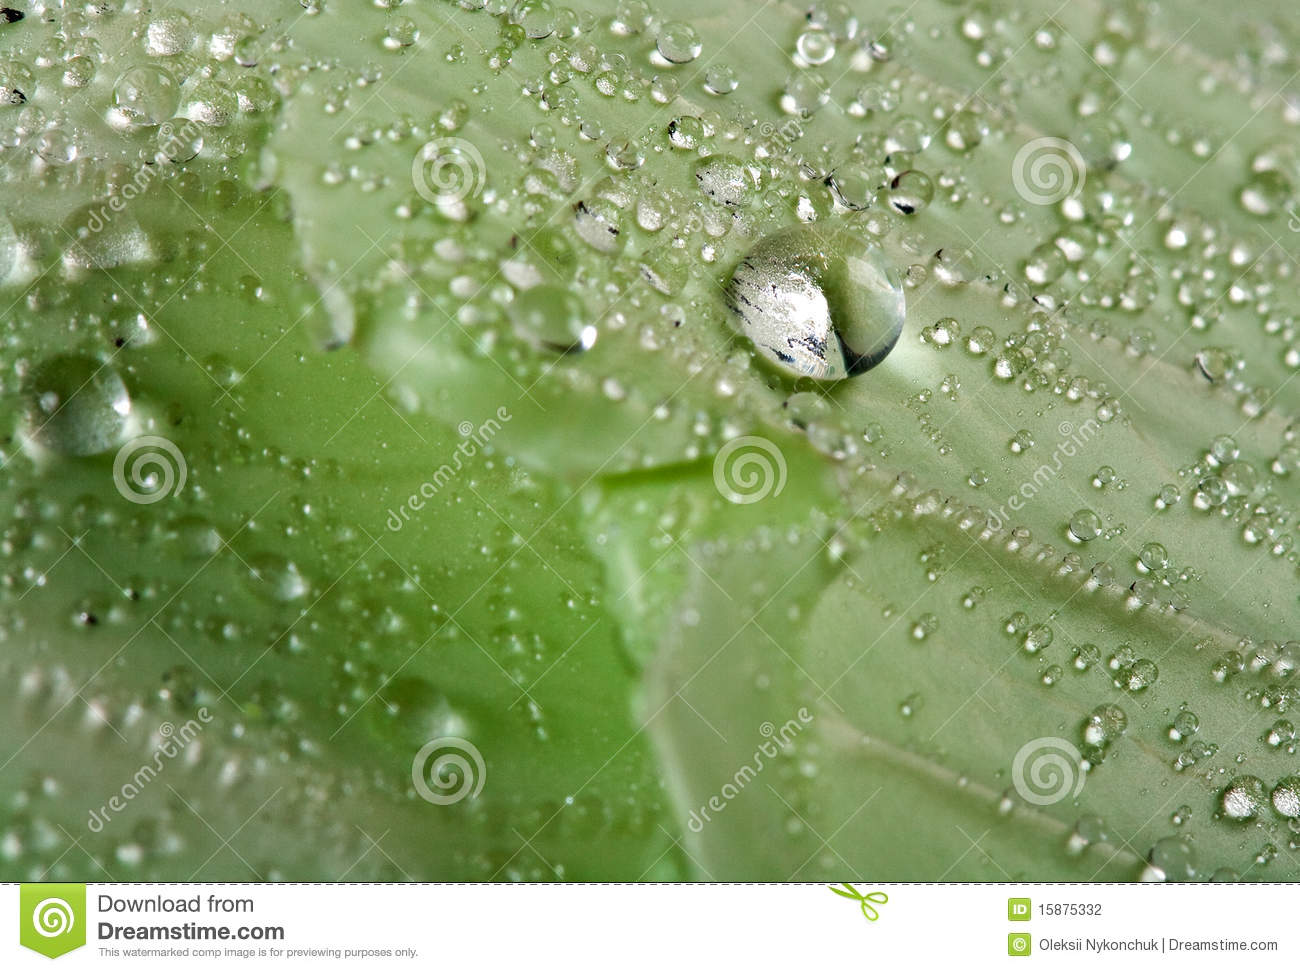 Stock Photography  Drop of water on leafWater Drop Photography On Leaf